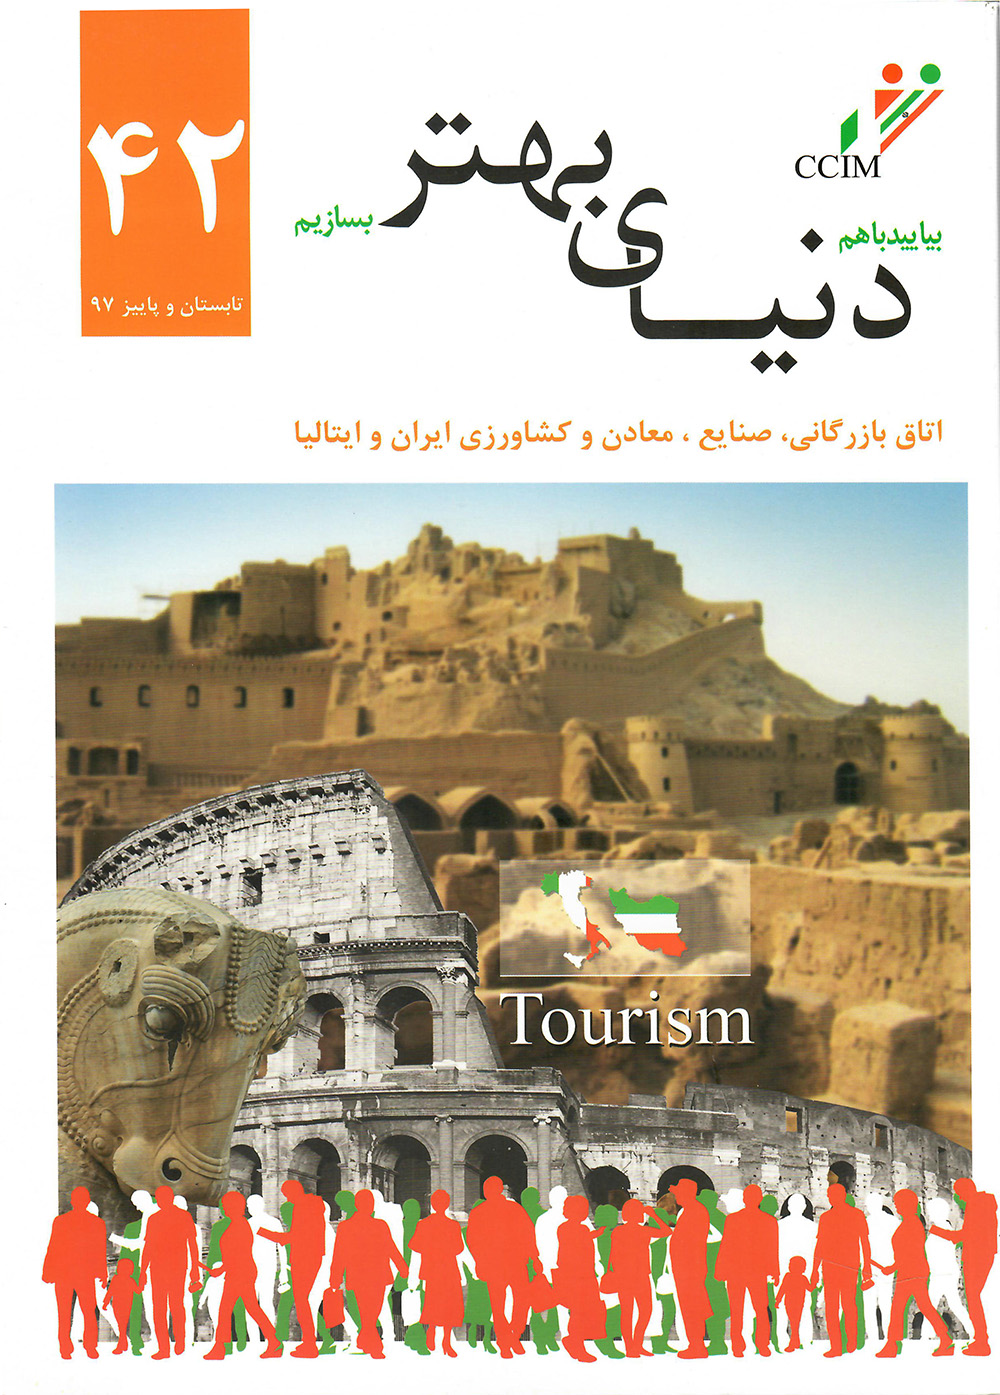 Specialized Bilingual IICCIM Magazine-42